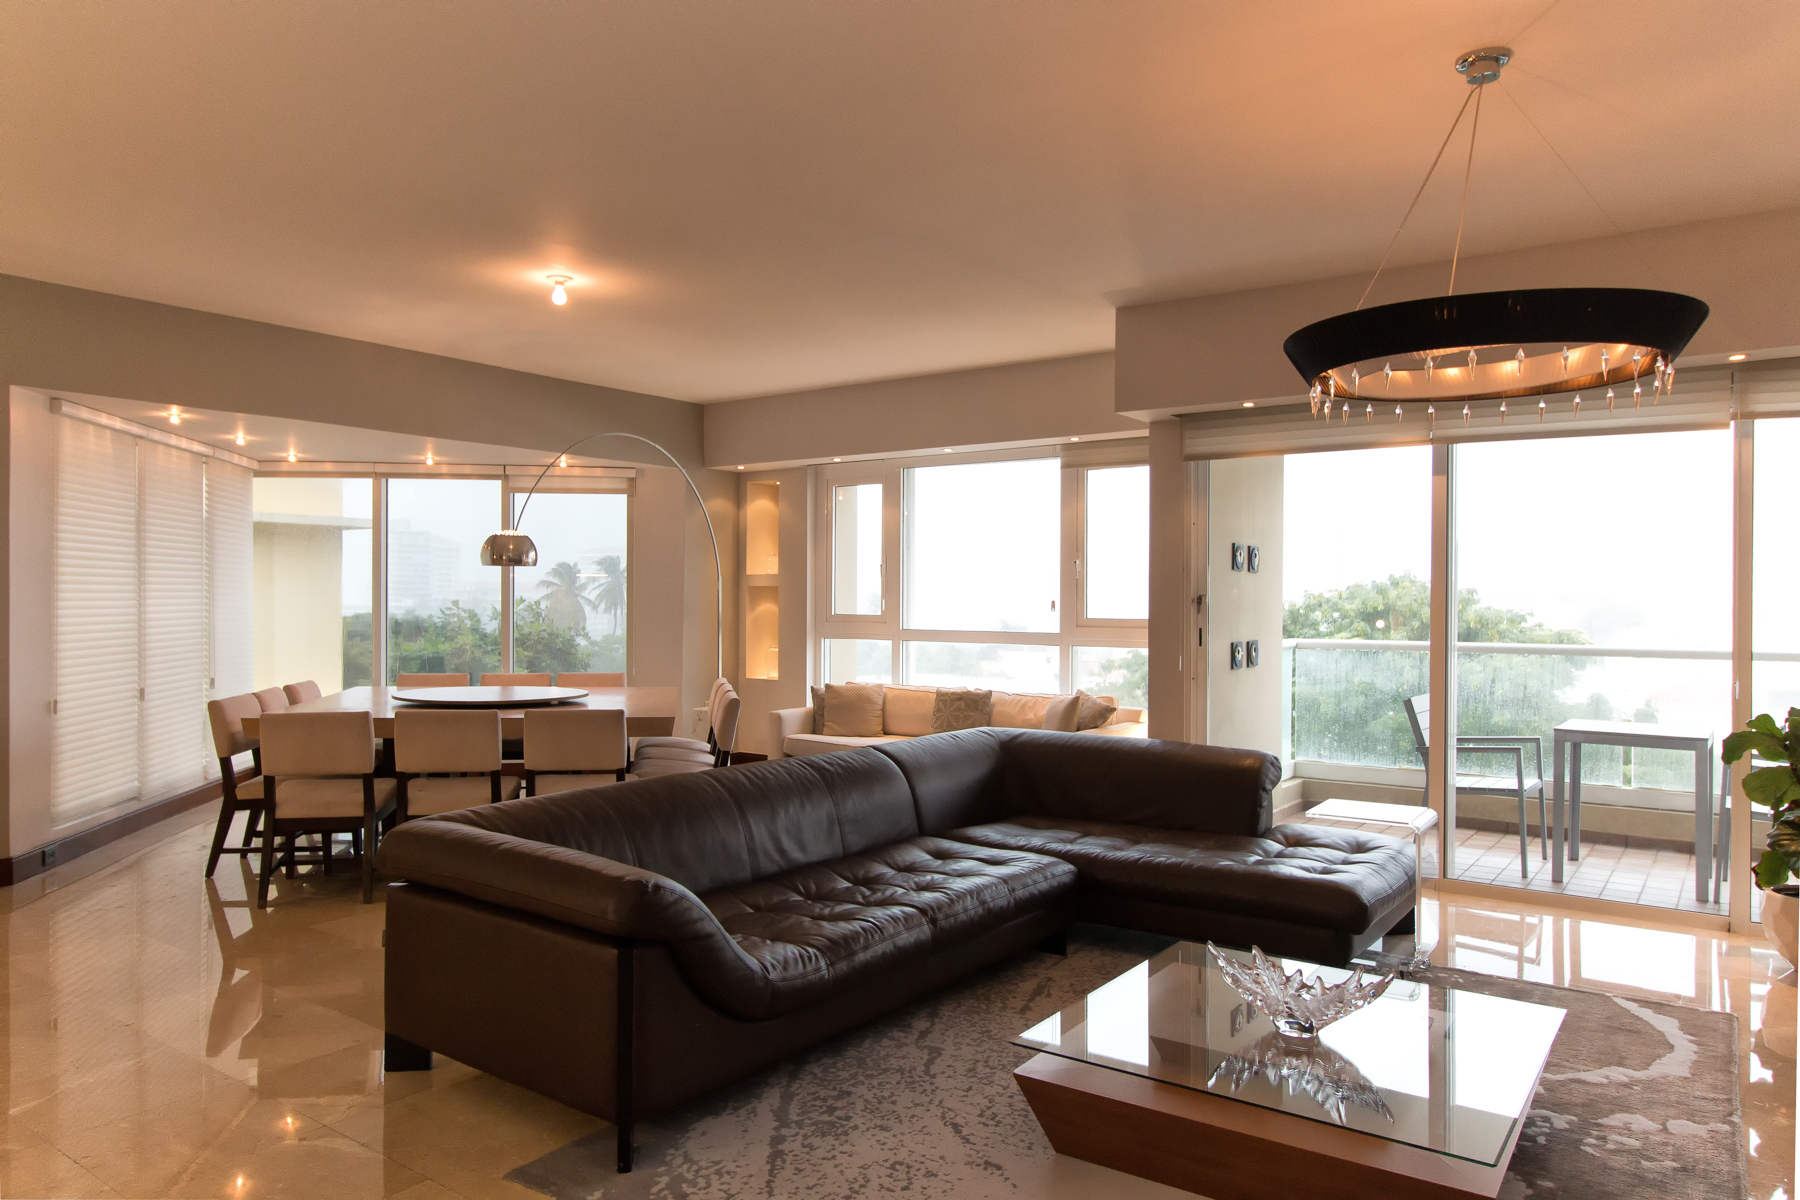 Duplex for Sale at Elegant Four Bedroom at The Excelsior 805 Ponce De Leon Avenue Apt 302 San Juan, 00907 Puerto Rico